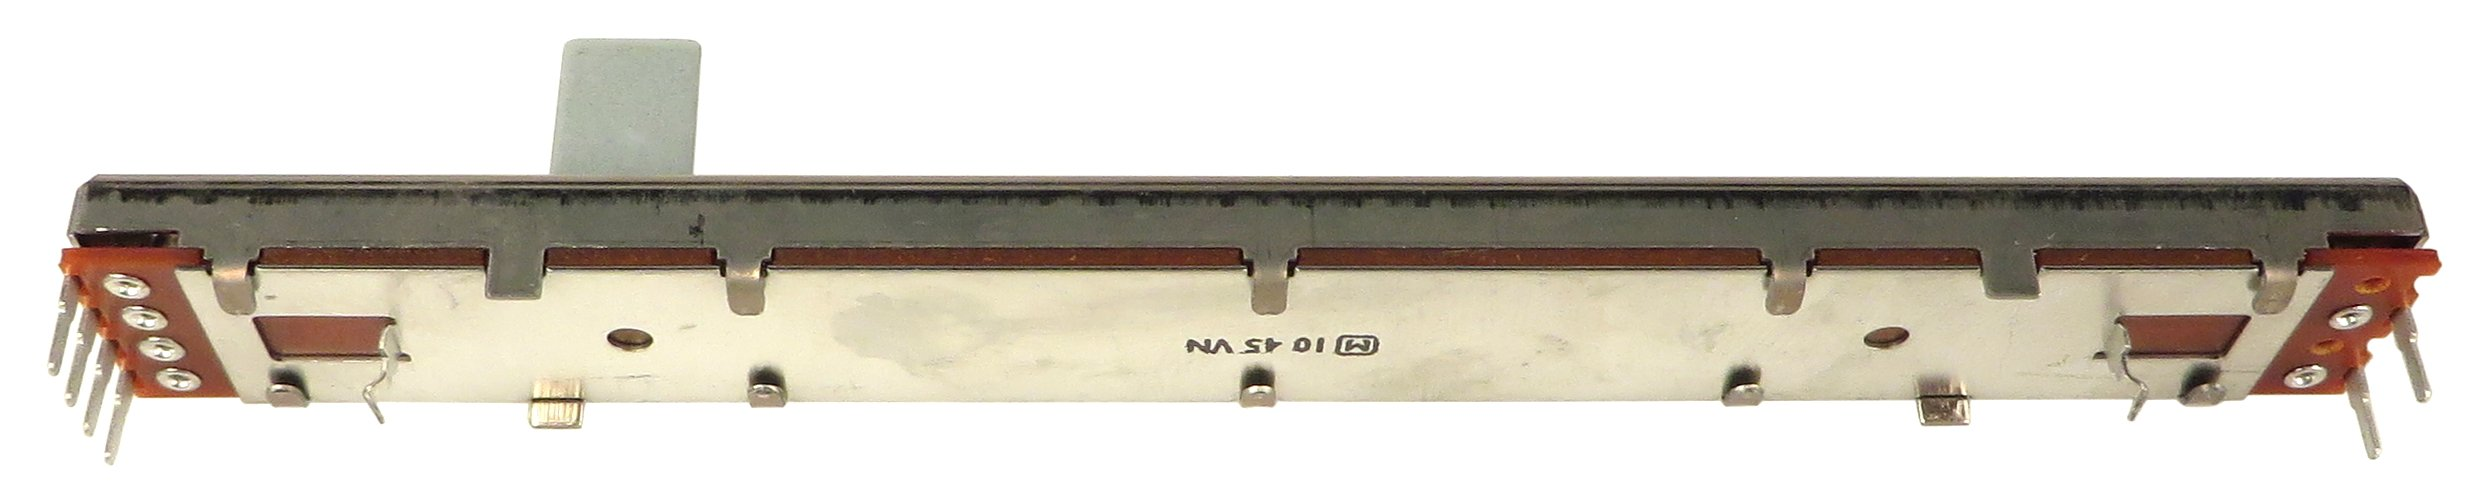 10k Master Dual Fader for 8-Bus Series